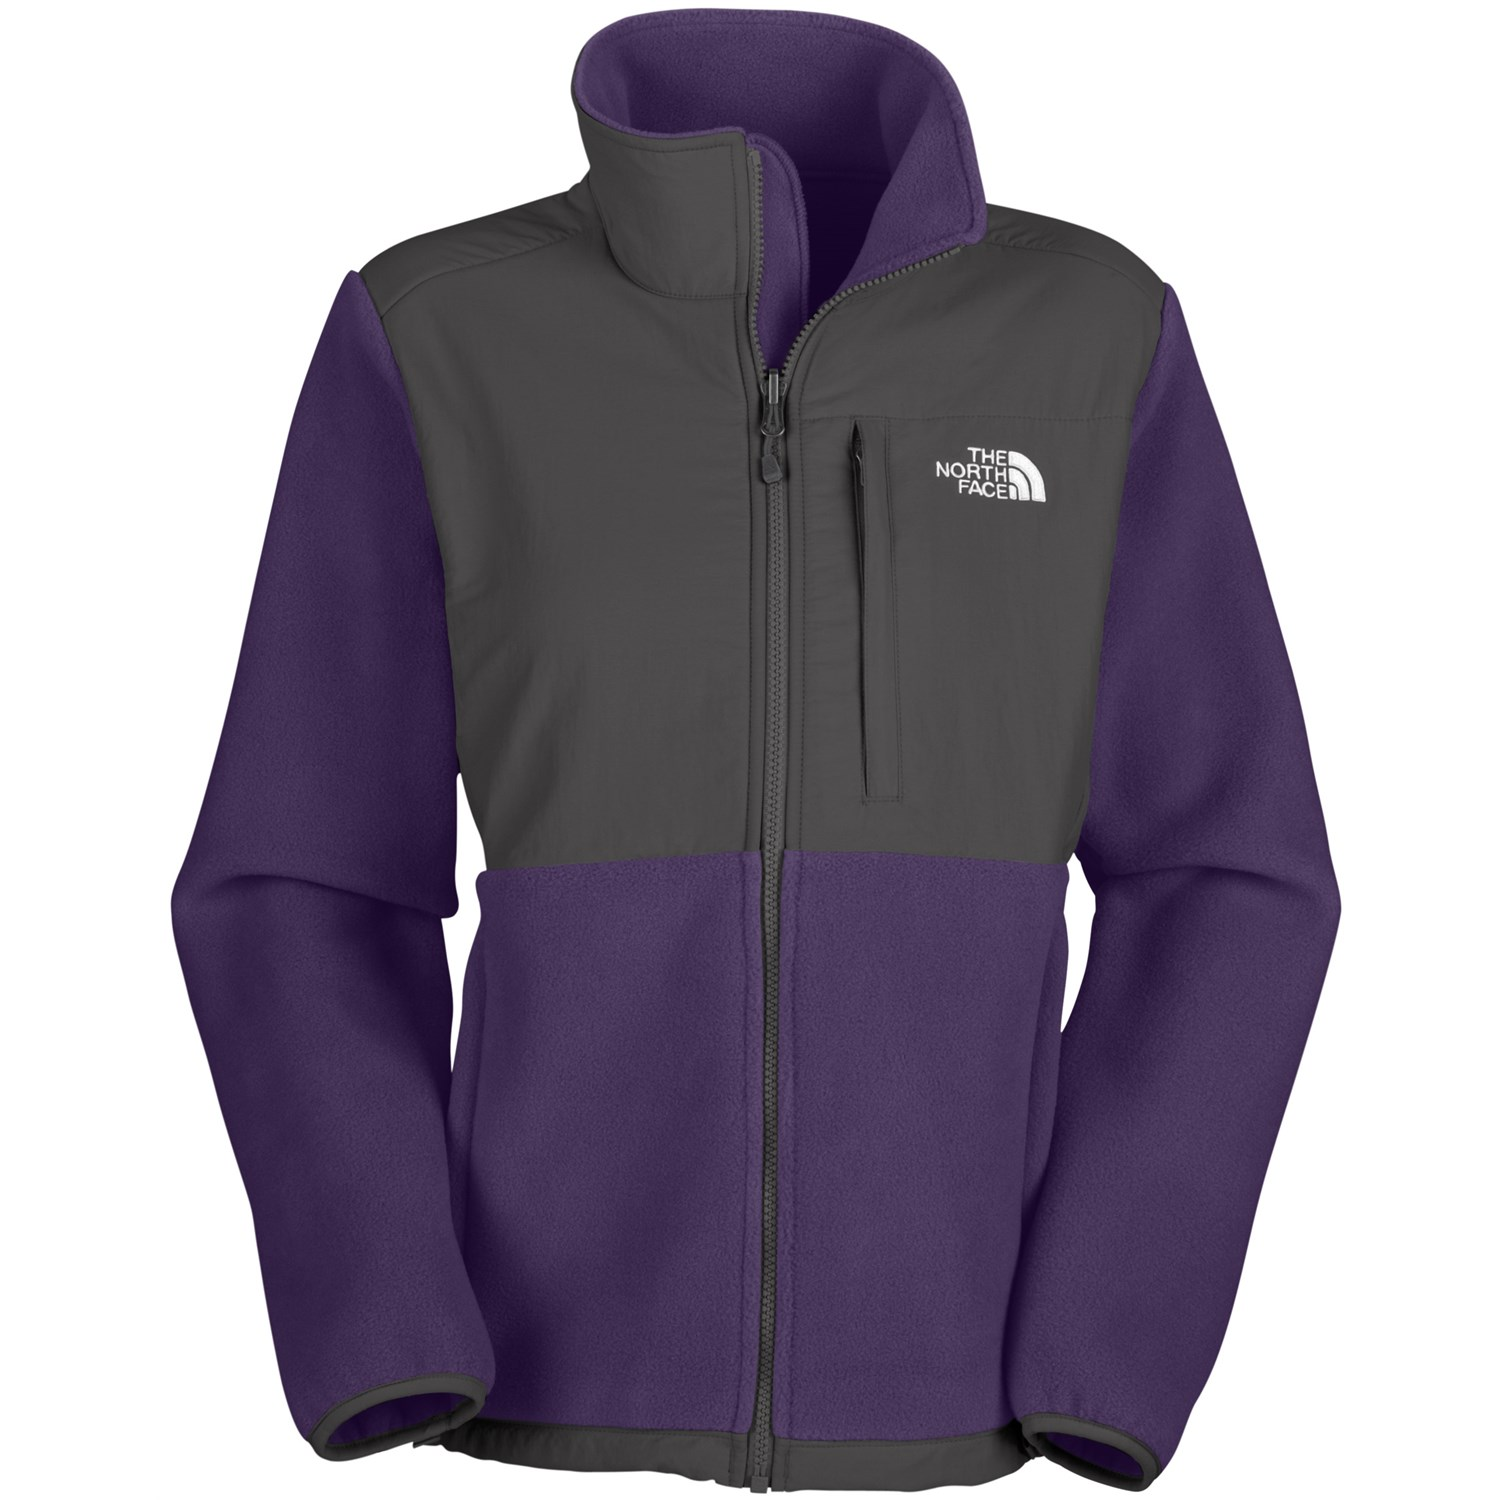 Black northface jacket womens